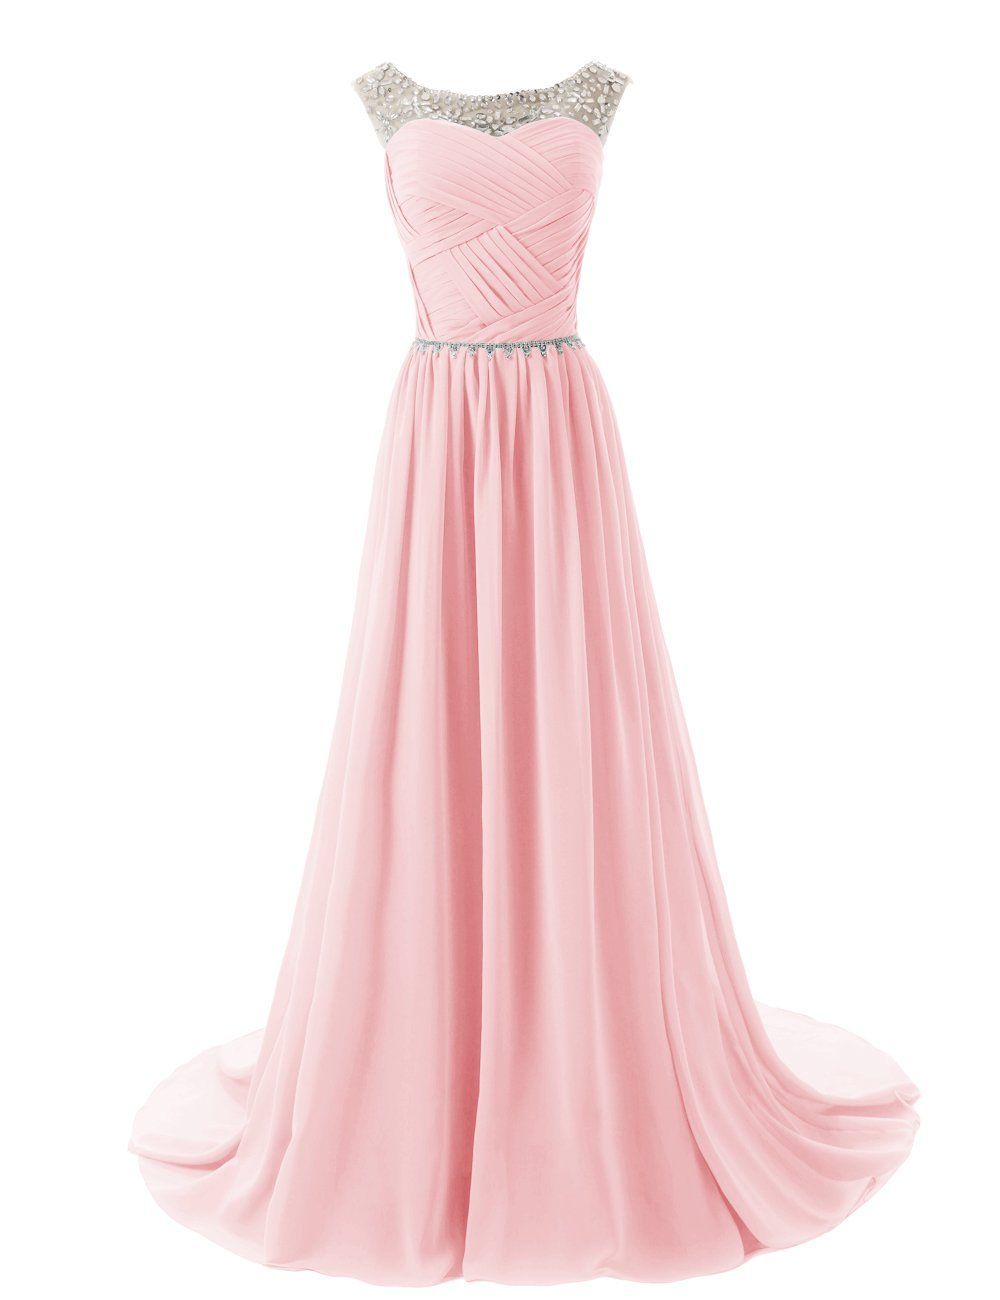 Dressystar beaded straps bridesmaid prom dresses with sparkling